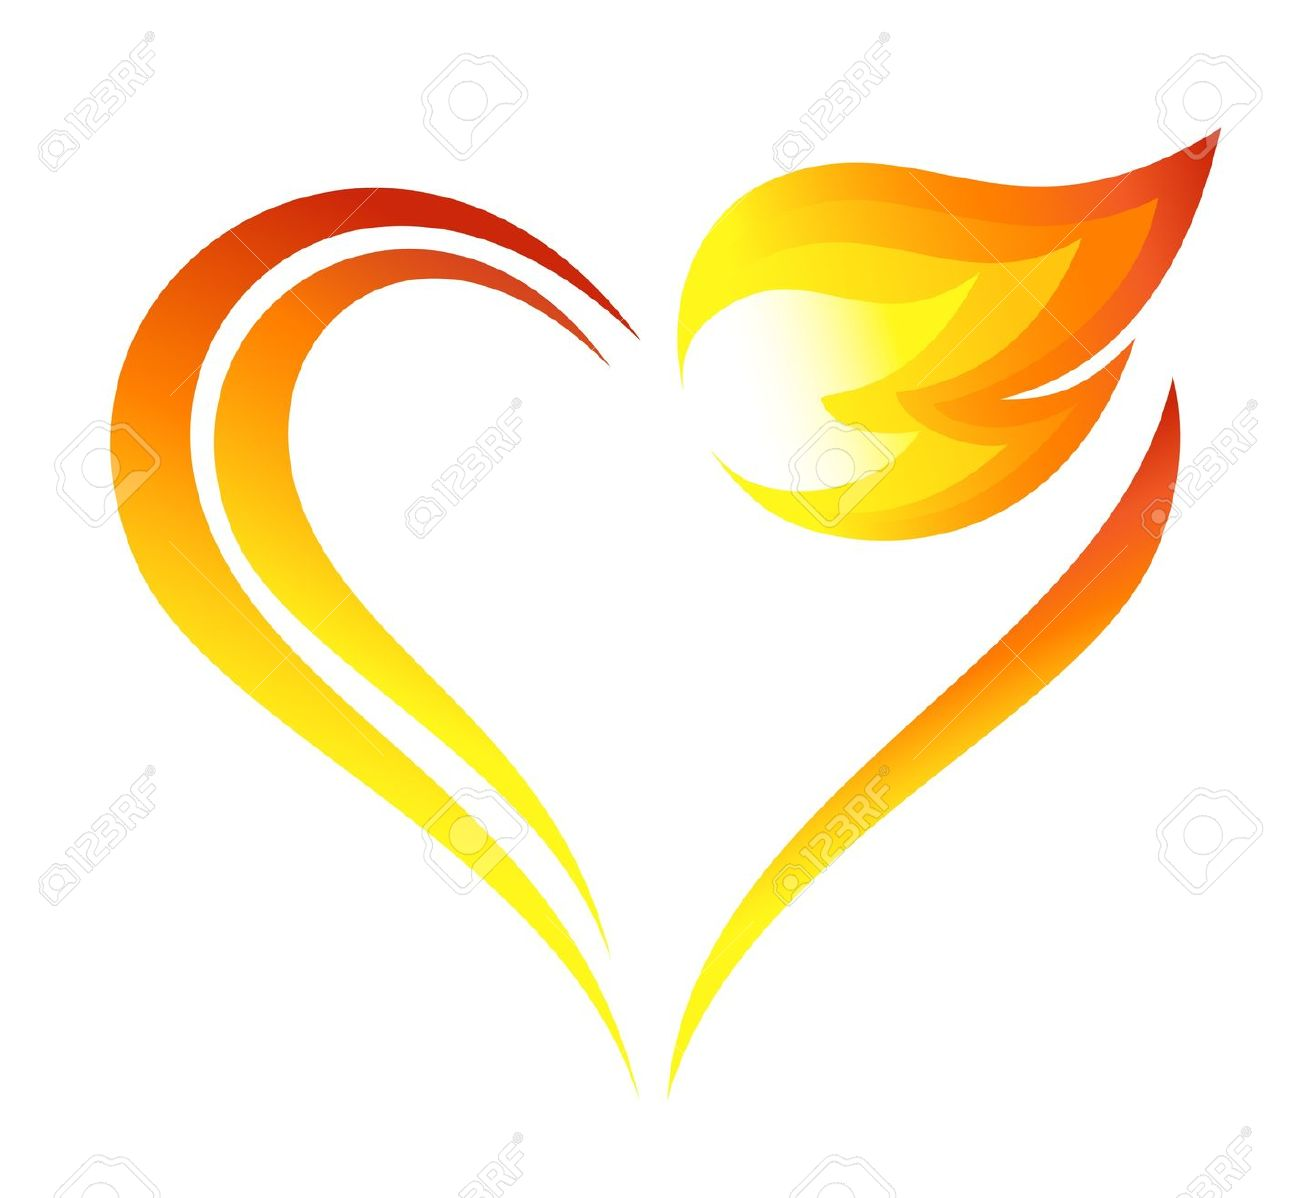 Heart flame clipart png library download Hearts Flame | Free download best Hearts Flame on ClipArtMag.com png library download